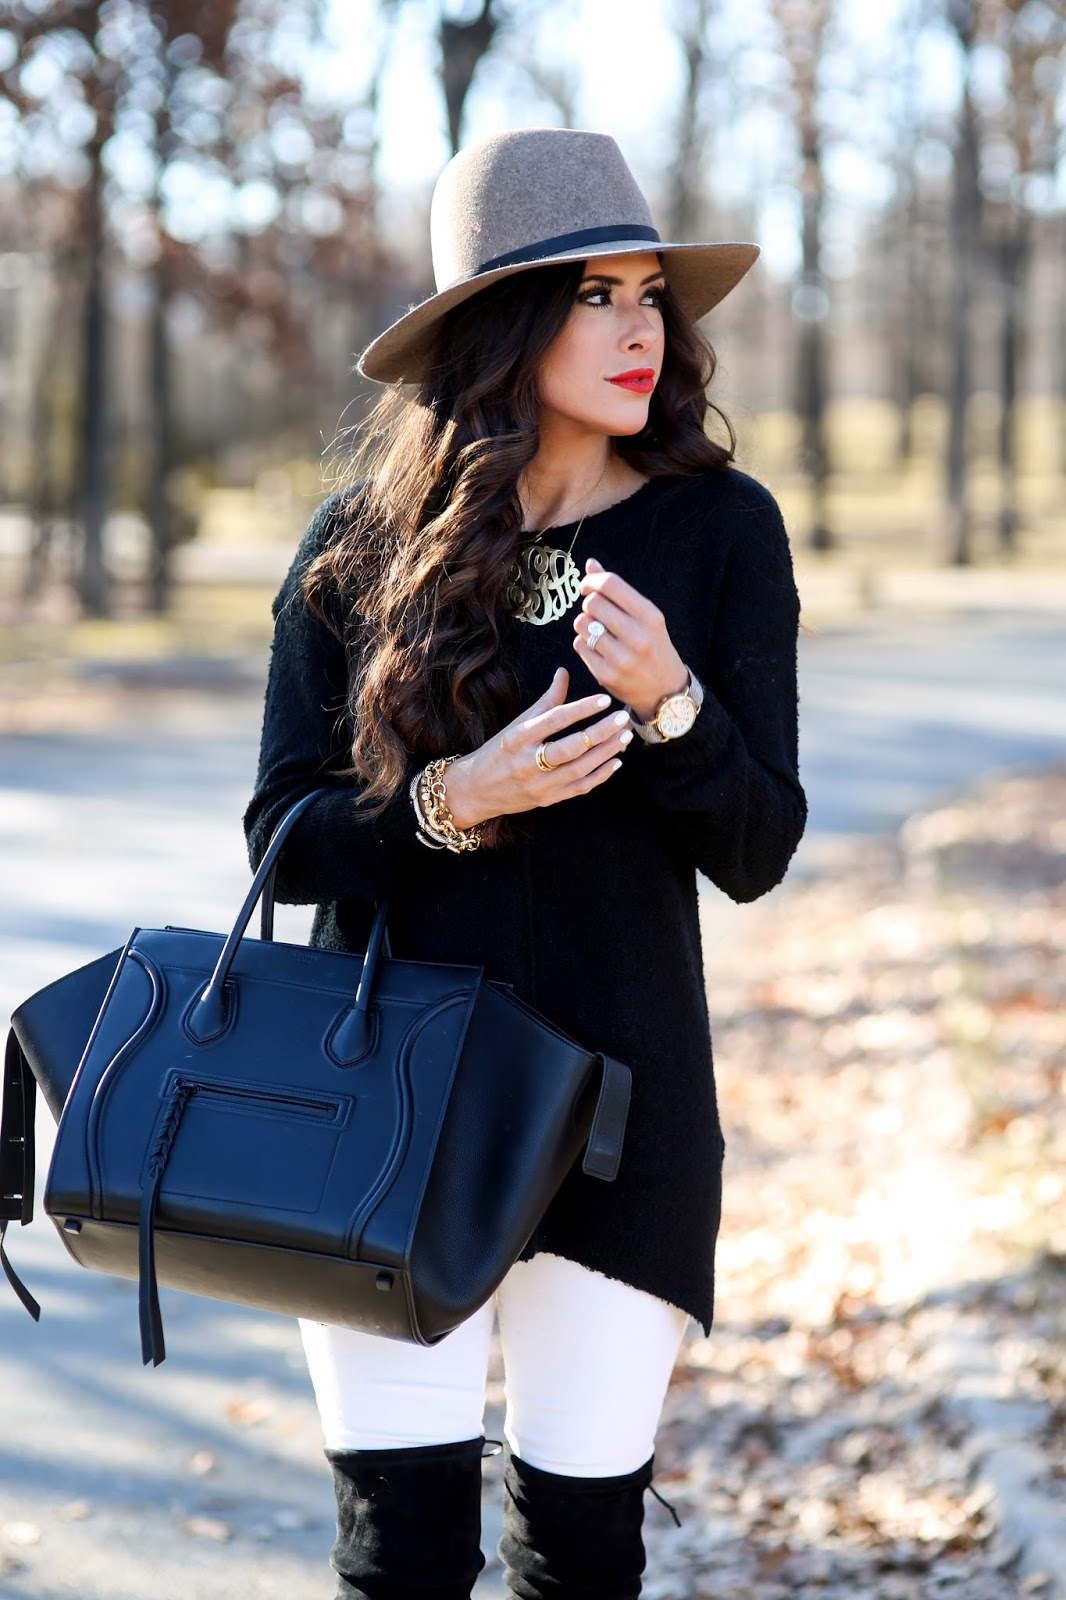 how to wear white denim in the winter, janessa leone hat, BP nordstrom sweaters, winter outfit ideas pinterest, fall fashion pinterest, winter fashion pinterest, emily gemma blog, the sweetest thing blog, tulsa fashion blogger, celine phantom black, stuart weitzman highland black, ootd over the knee boots, how to wear over the knee boots with white denim, timex watch tweed, brunette balayage, brunette haircut long layers medium, david yurman bracelet stack, oversized gold monogram, love always monogram, henri daussi ring, bauble bar gold link bracelet